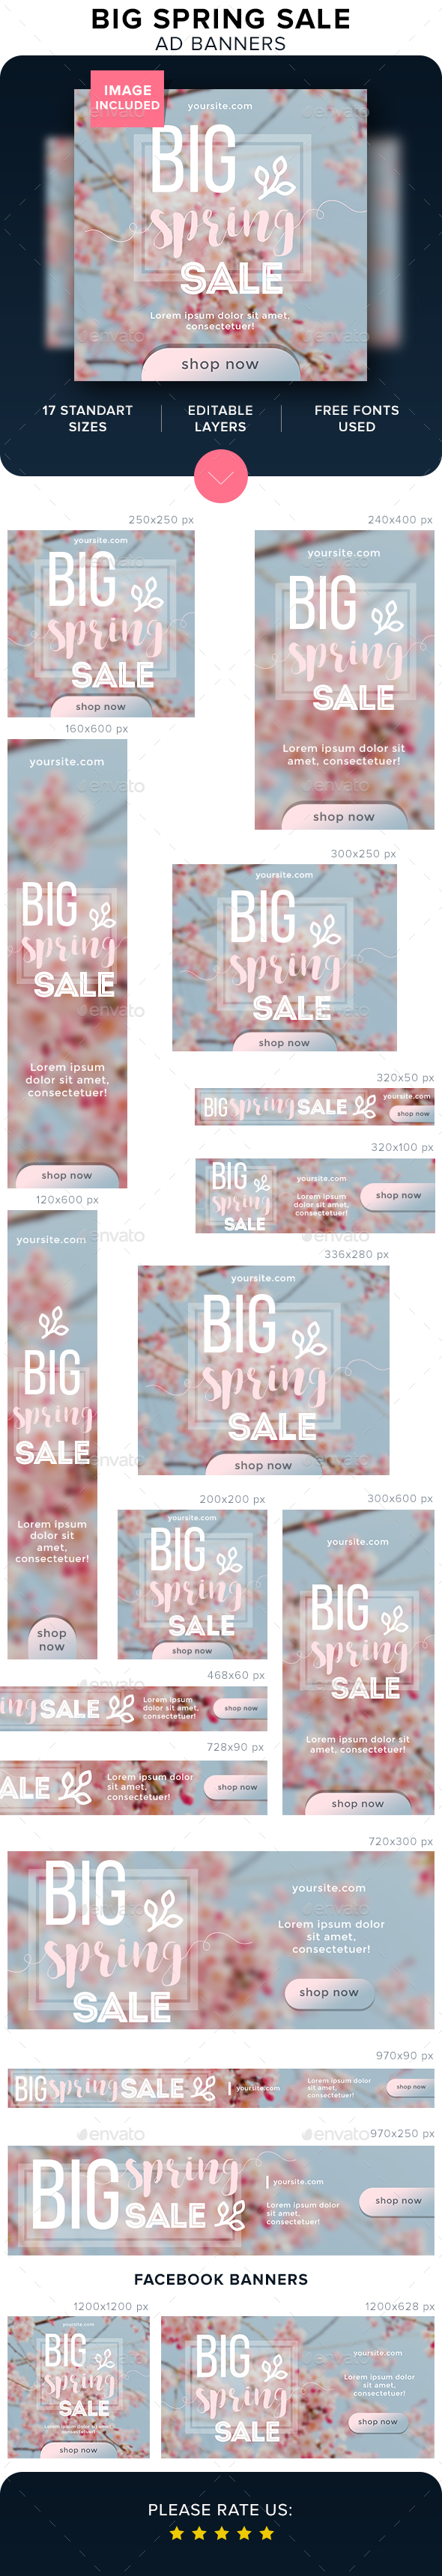 Big Spring Sale Ad Banners - Banners & Ads Web Elements